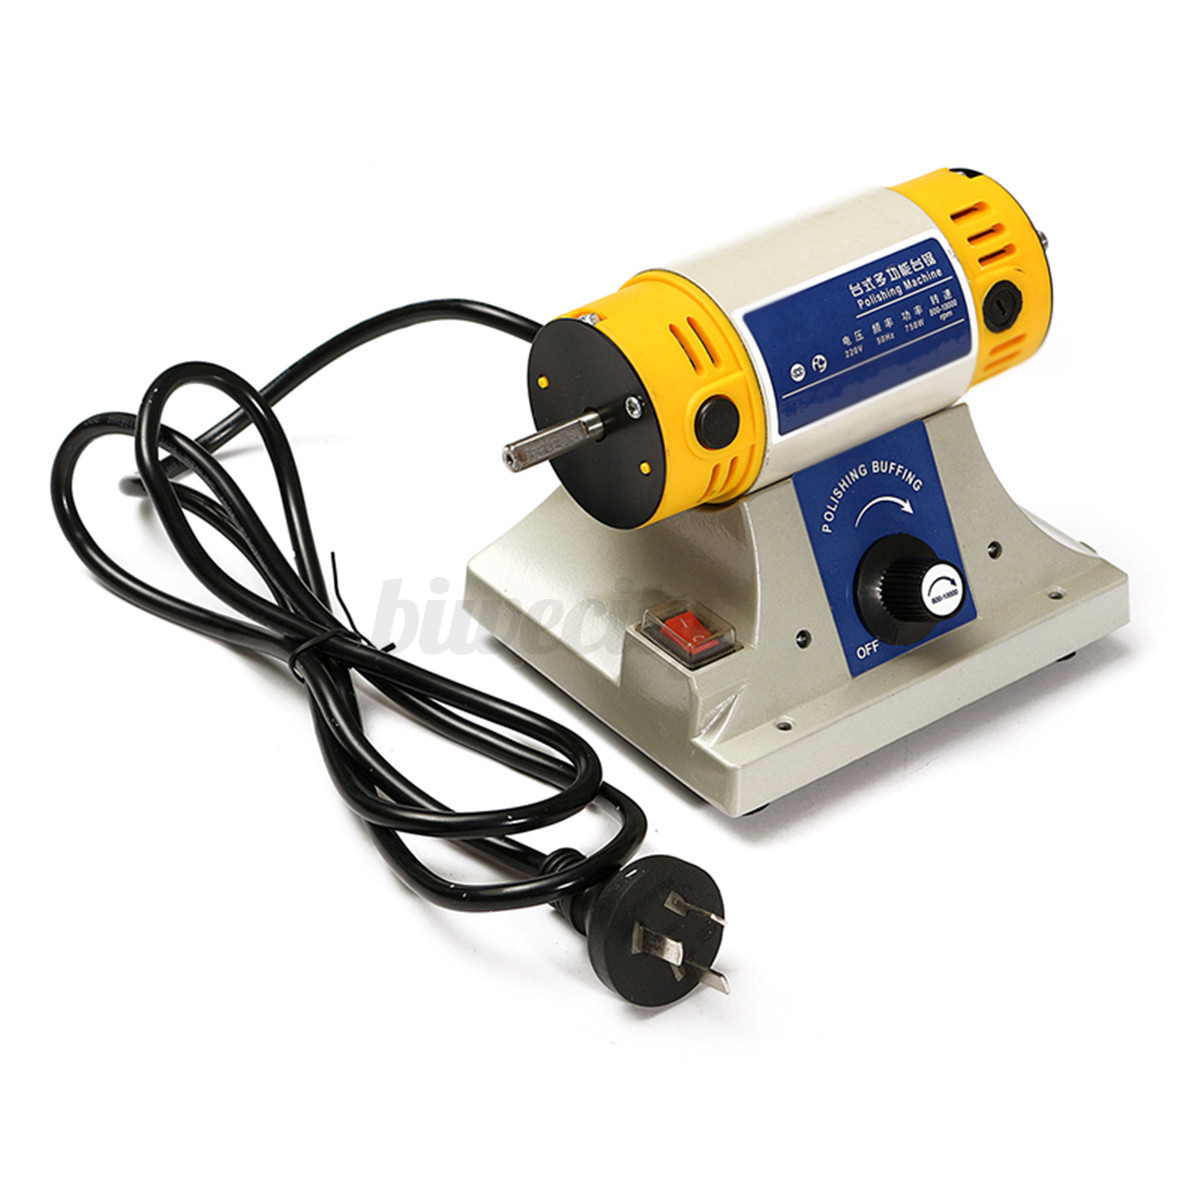 220v Mini Polishing Machine For Jewelry Dental Motor Lathe Bench Grinder Tools Ebay